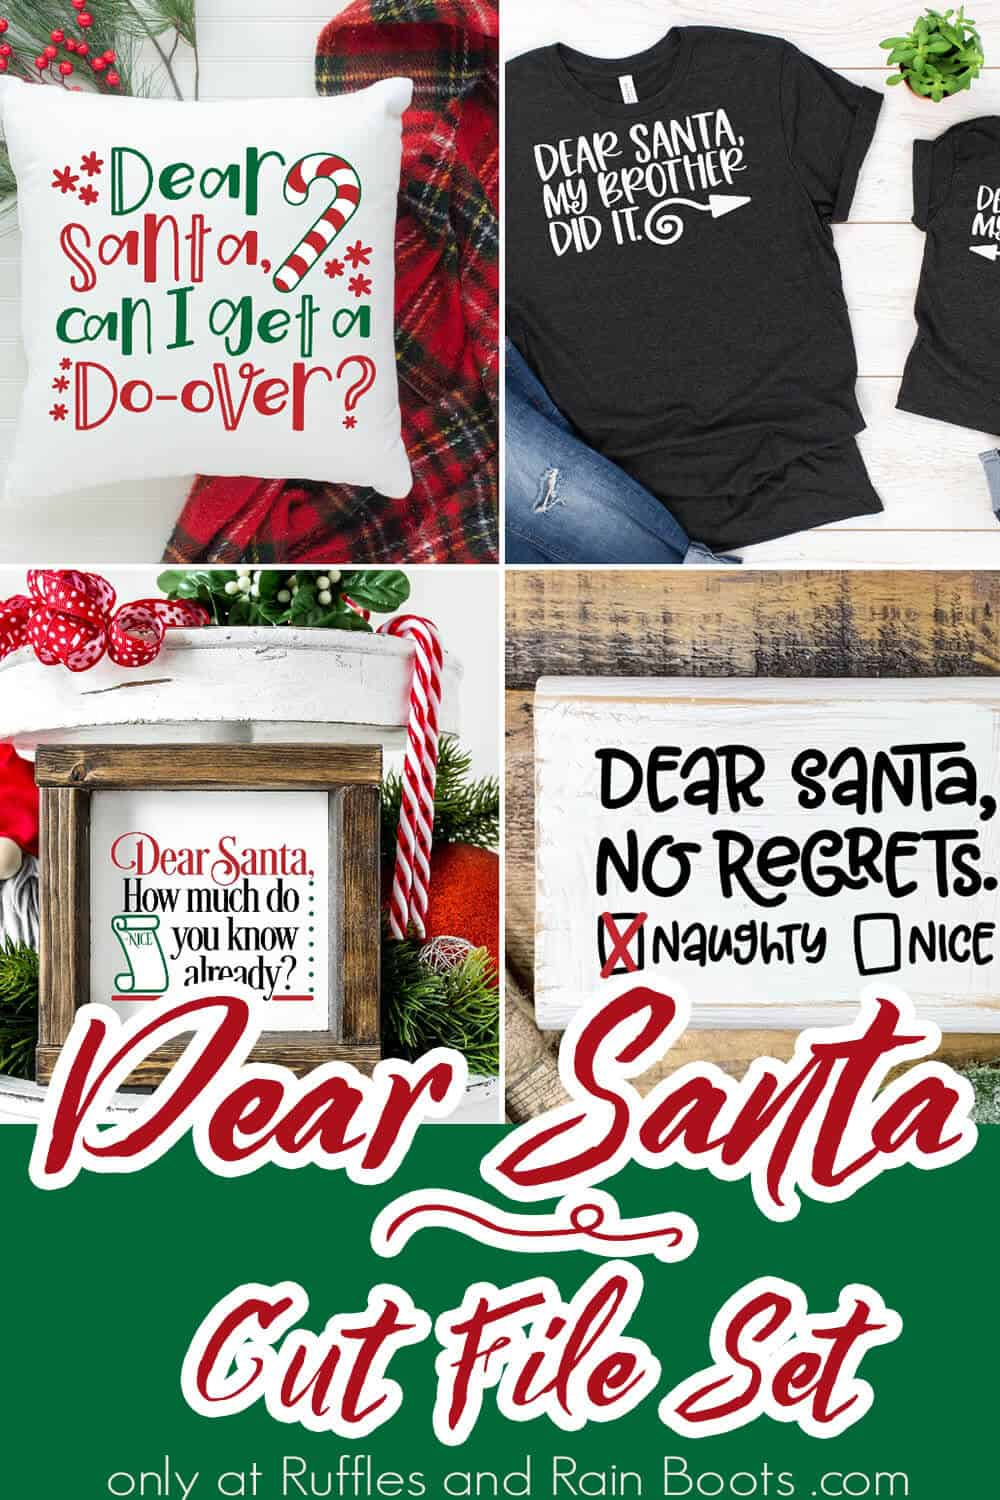 photo collage of christmas cut file set dear santa phrases for kids shirts with text which reads dear santa cut file set